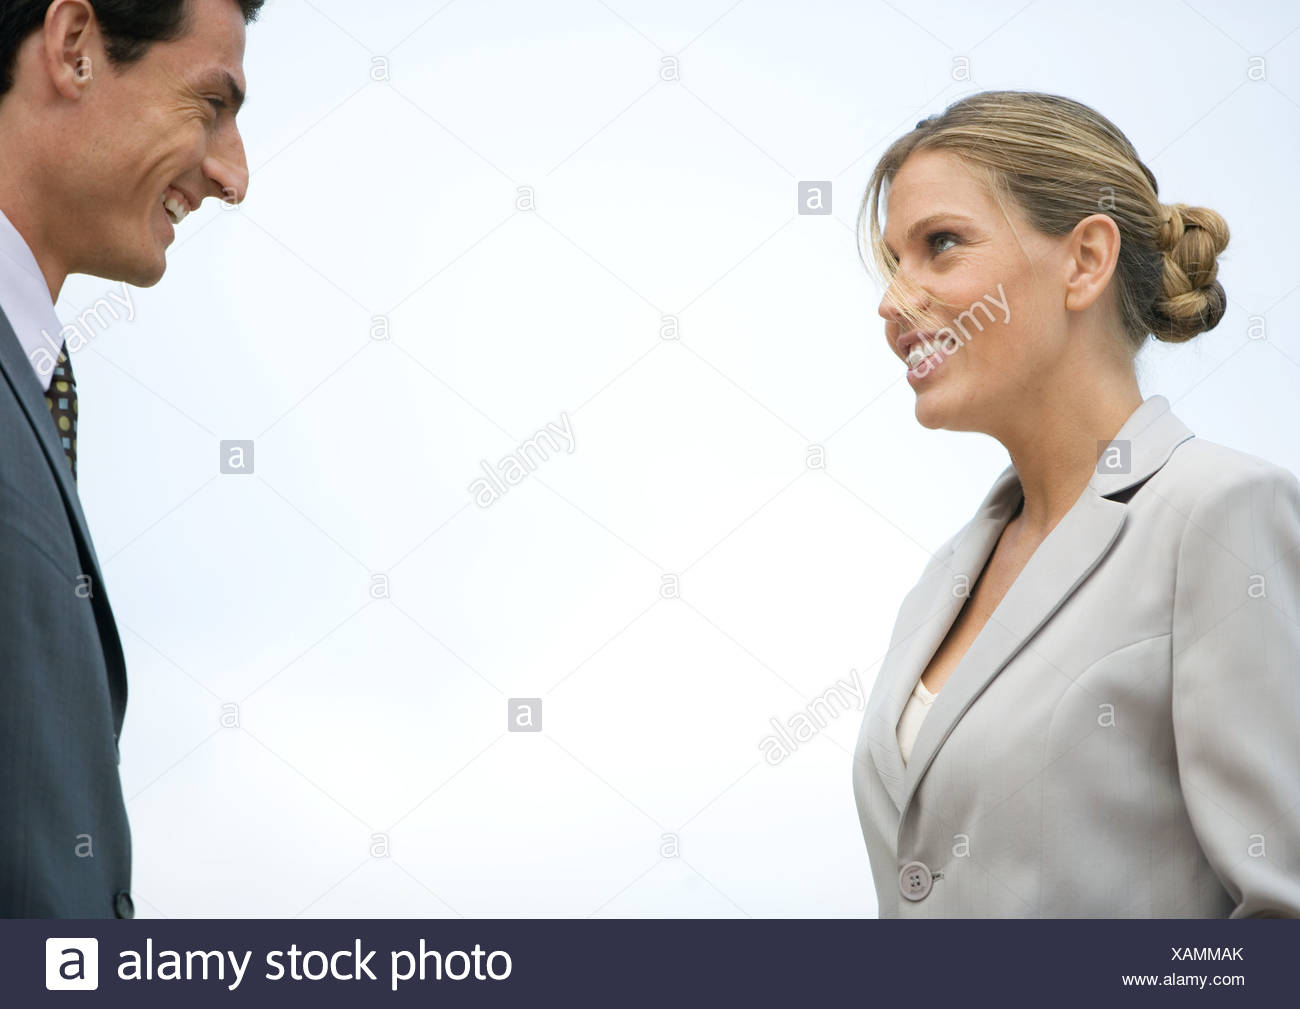 Young smiling at each other Photo Stock